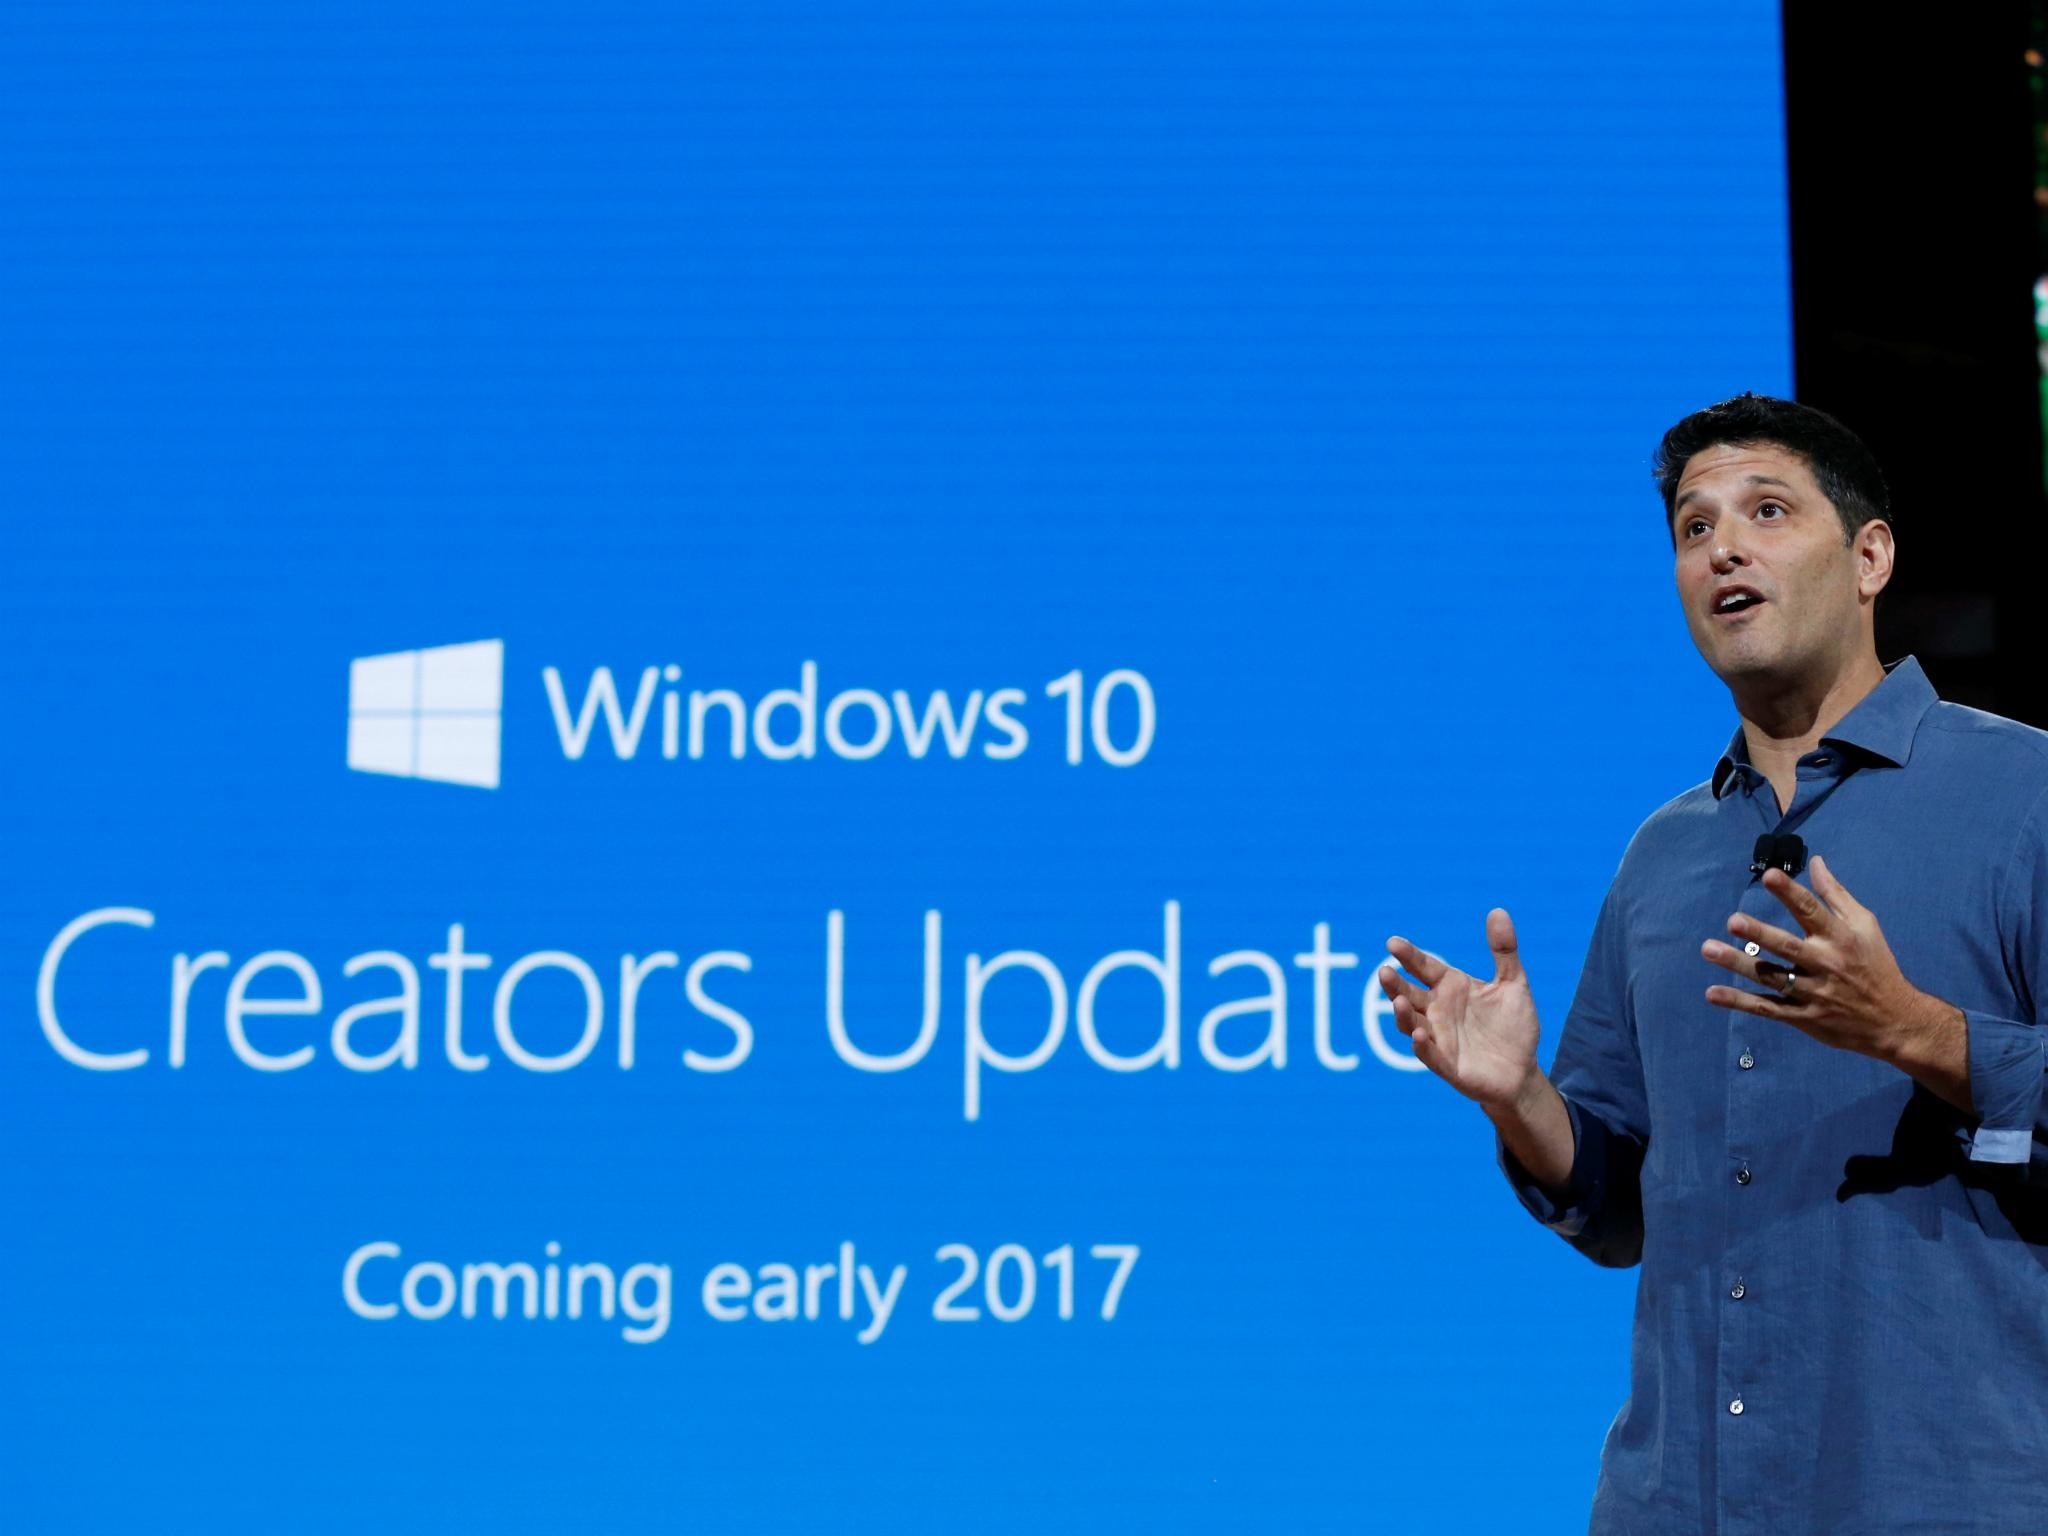 2048x1536 Windows 10 Creators Update: Software expected to take months to arrive  despite April launch | The Independent